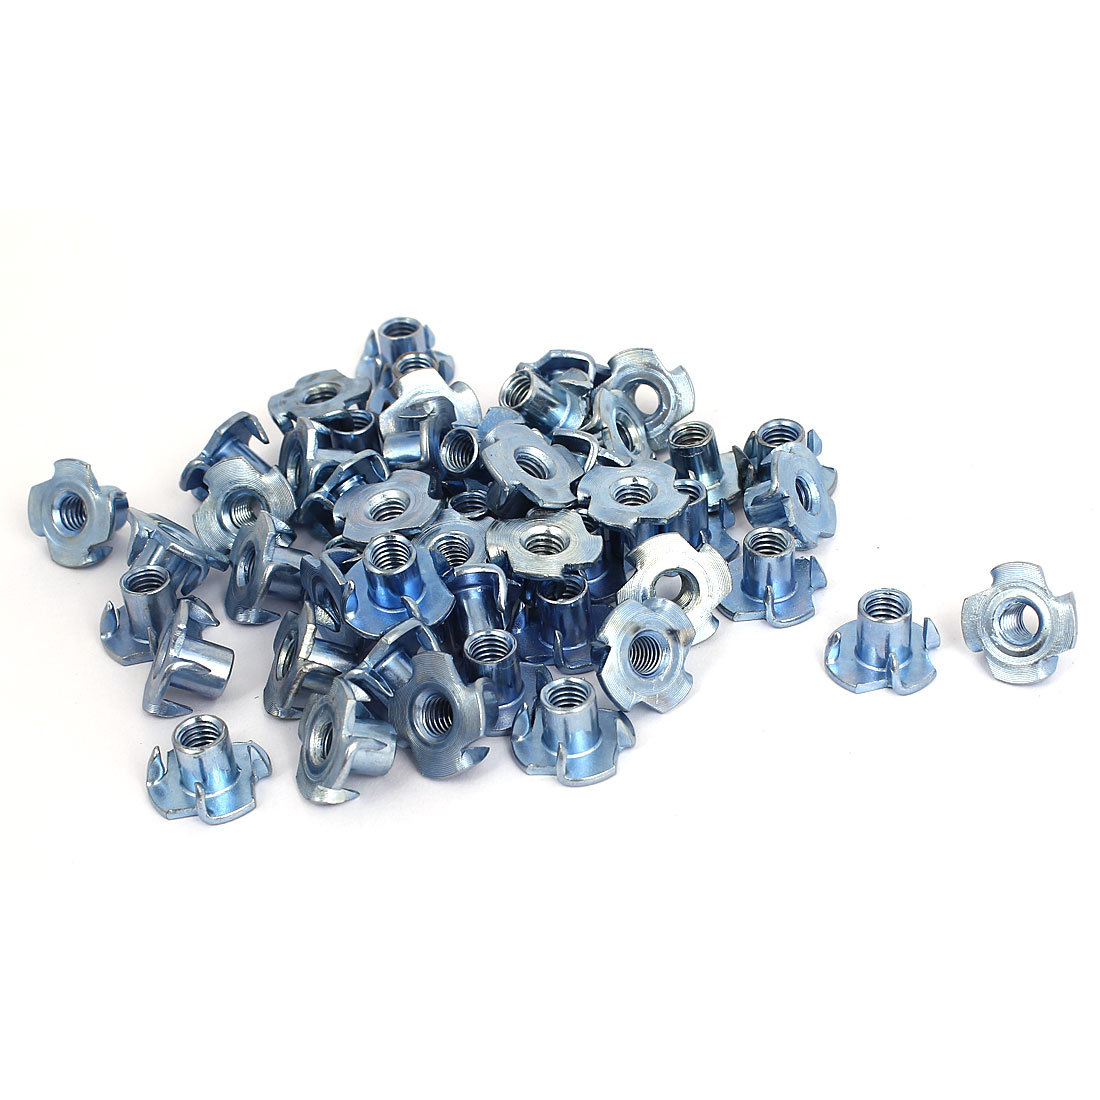 50 Pcs 5mmx10mmx17mm Metal 4 Prong Tee Nuts Connecter Furniture Fittings